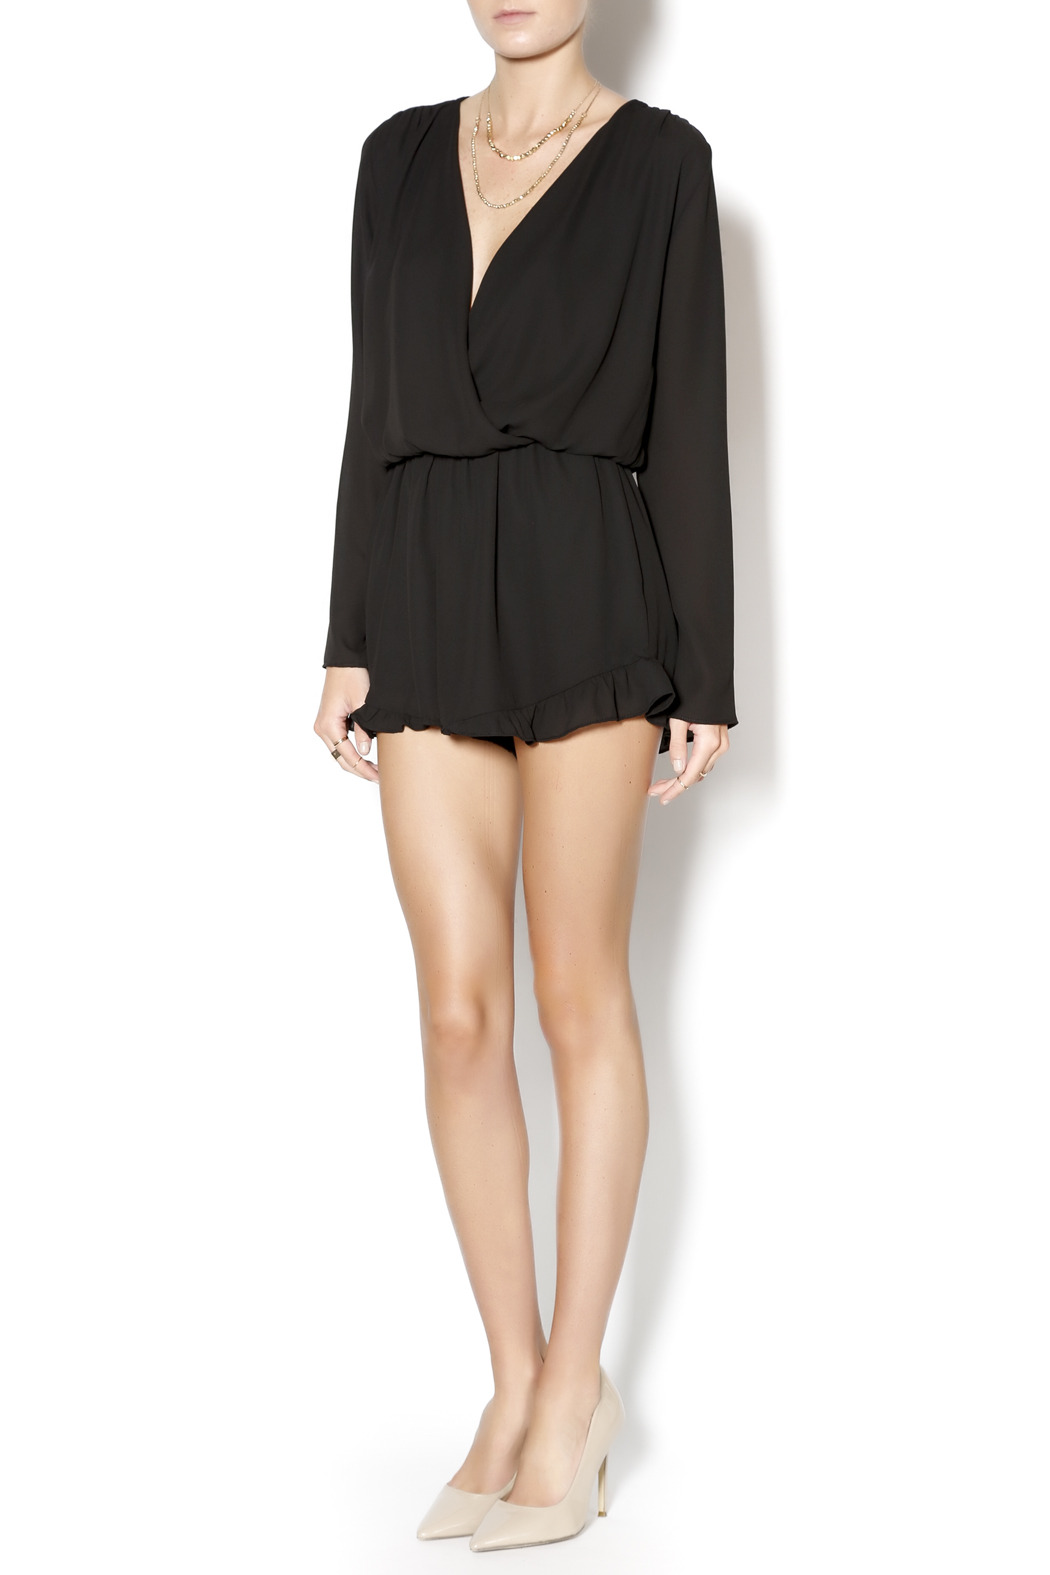 61fb91ecc758 Honey Punch Long Sleeve Black Romper from New Jersey by Pretty Edgy ...